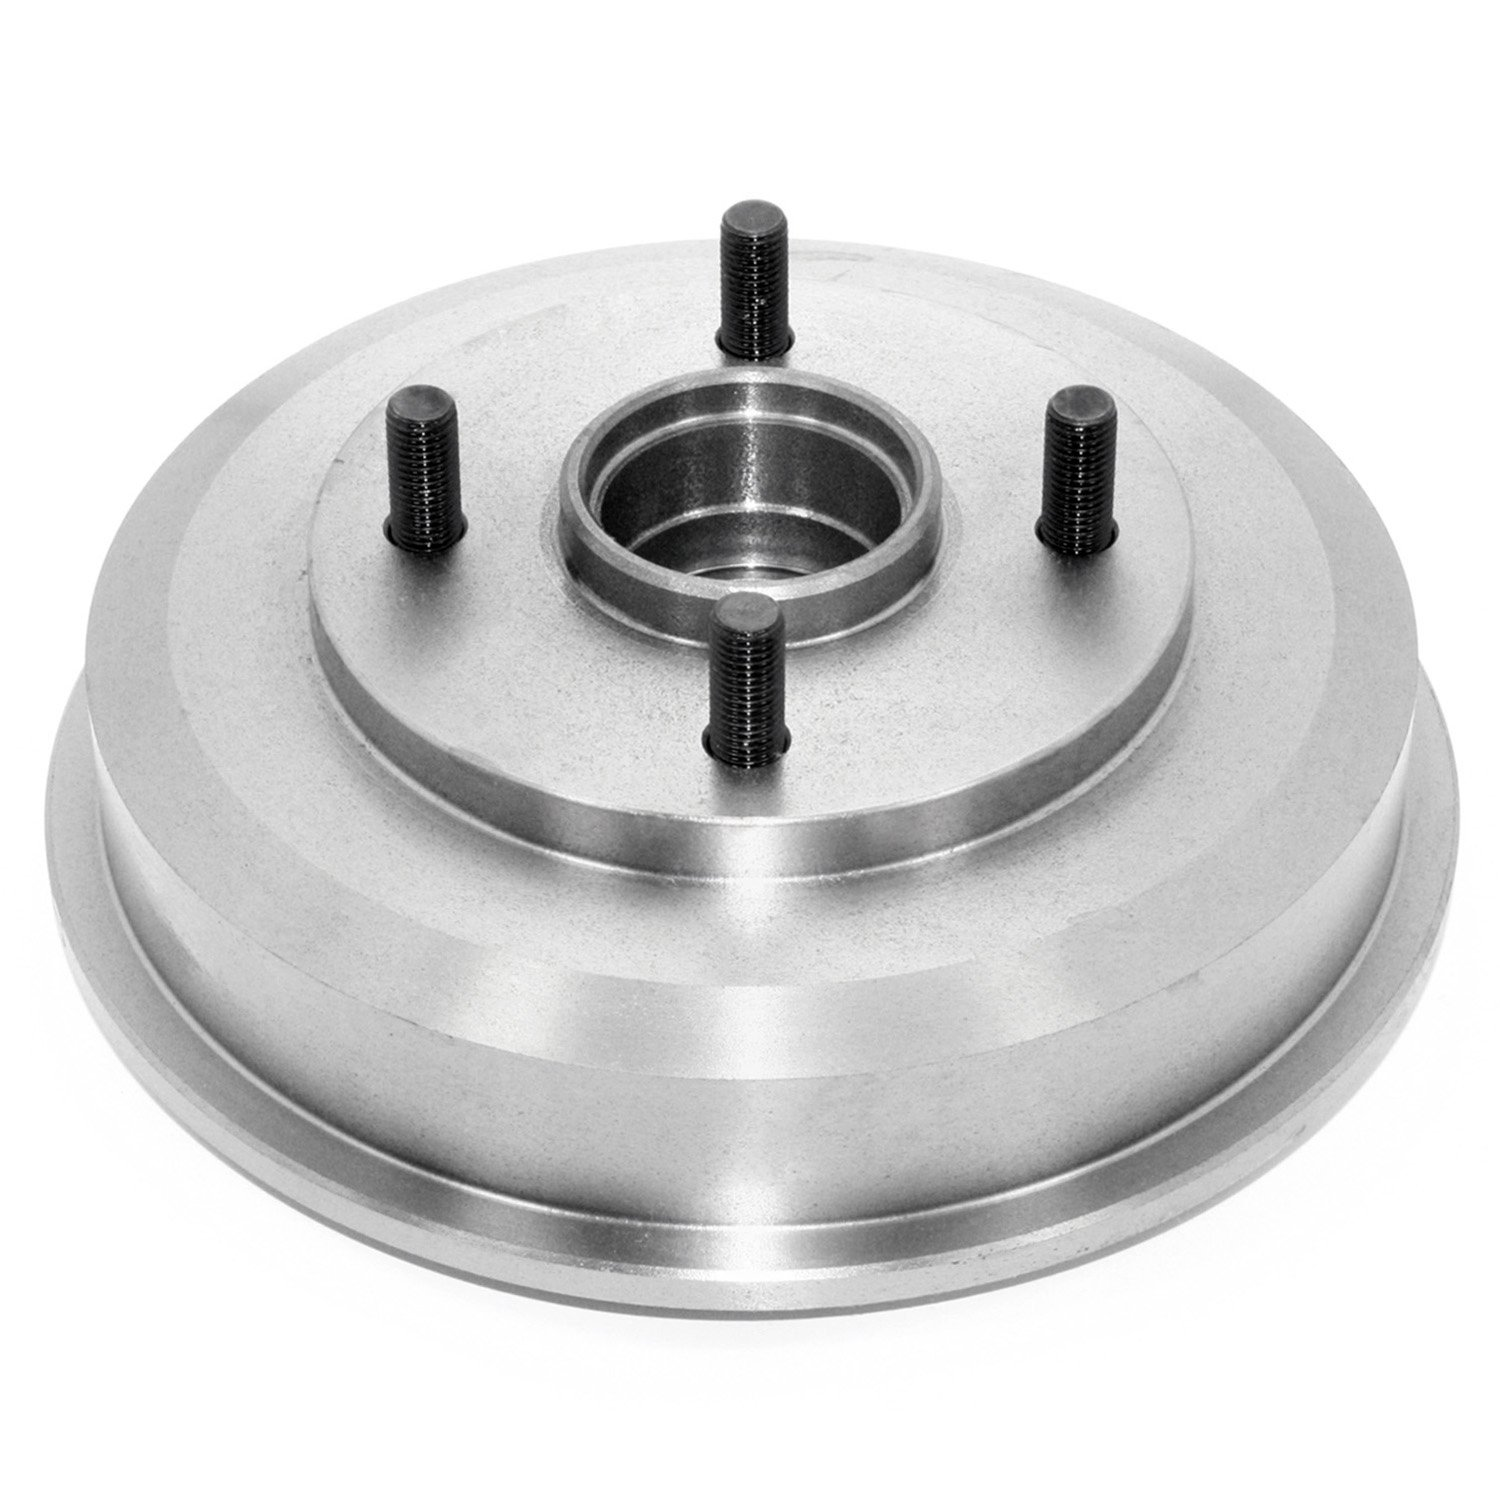 DuraGo BD80112 Hub Bearing Brake Drum